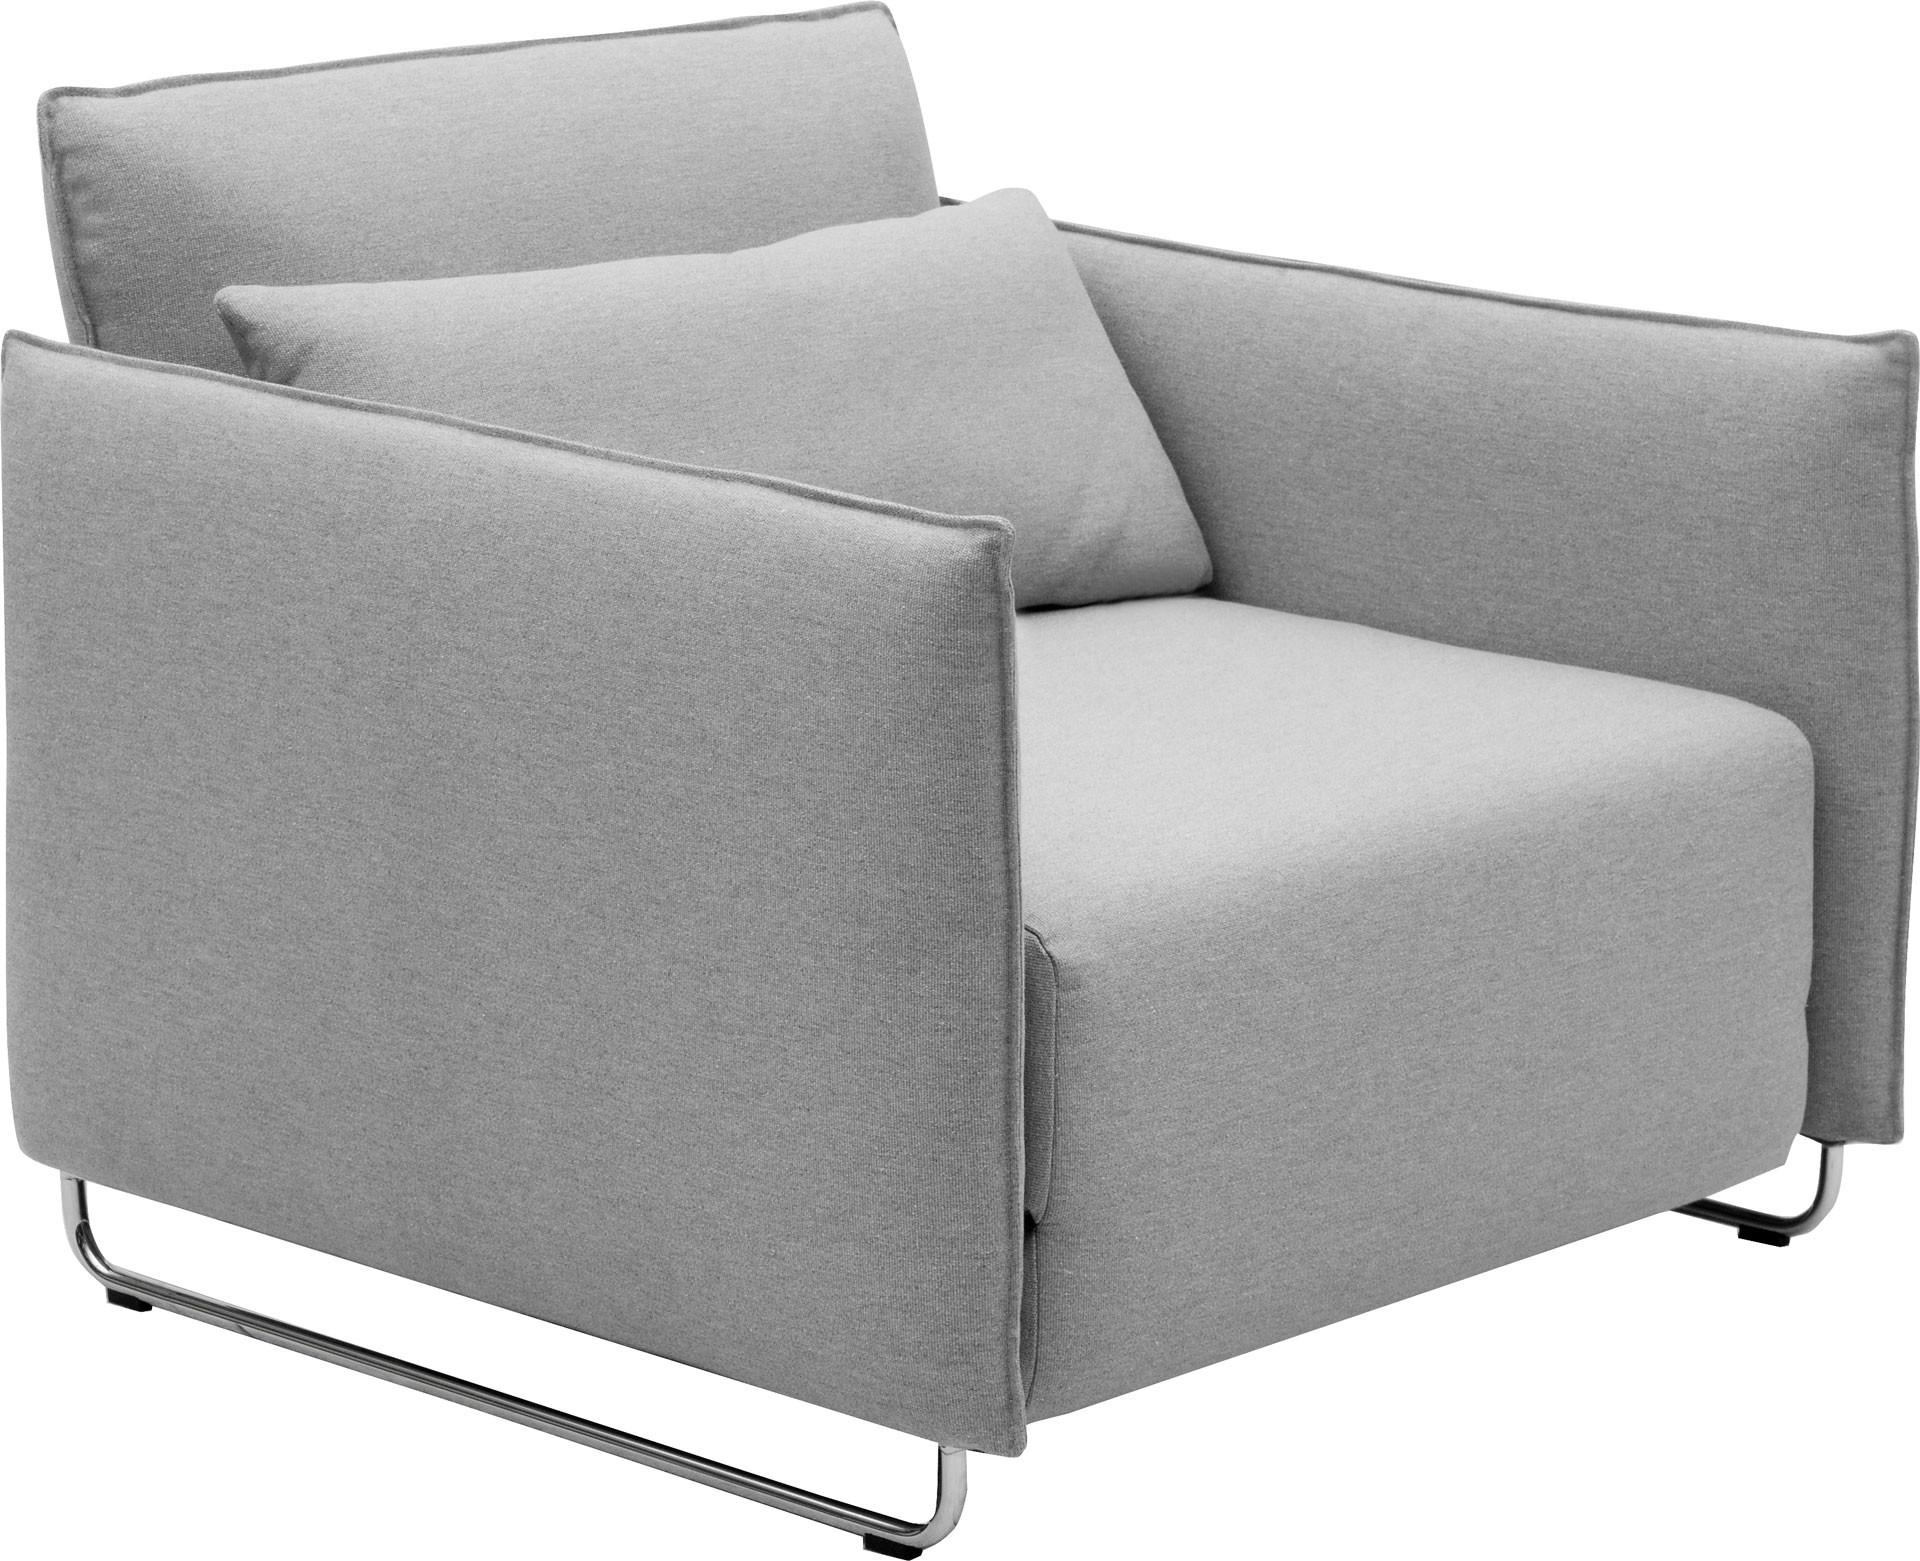 Sofas Center : Single Chair Sofa With Memory Foamsingle Foam Intended For Cheap Single Sofa Bed Chairs (Image 20 of 20)